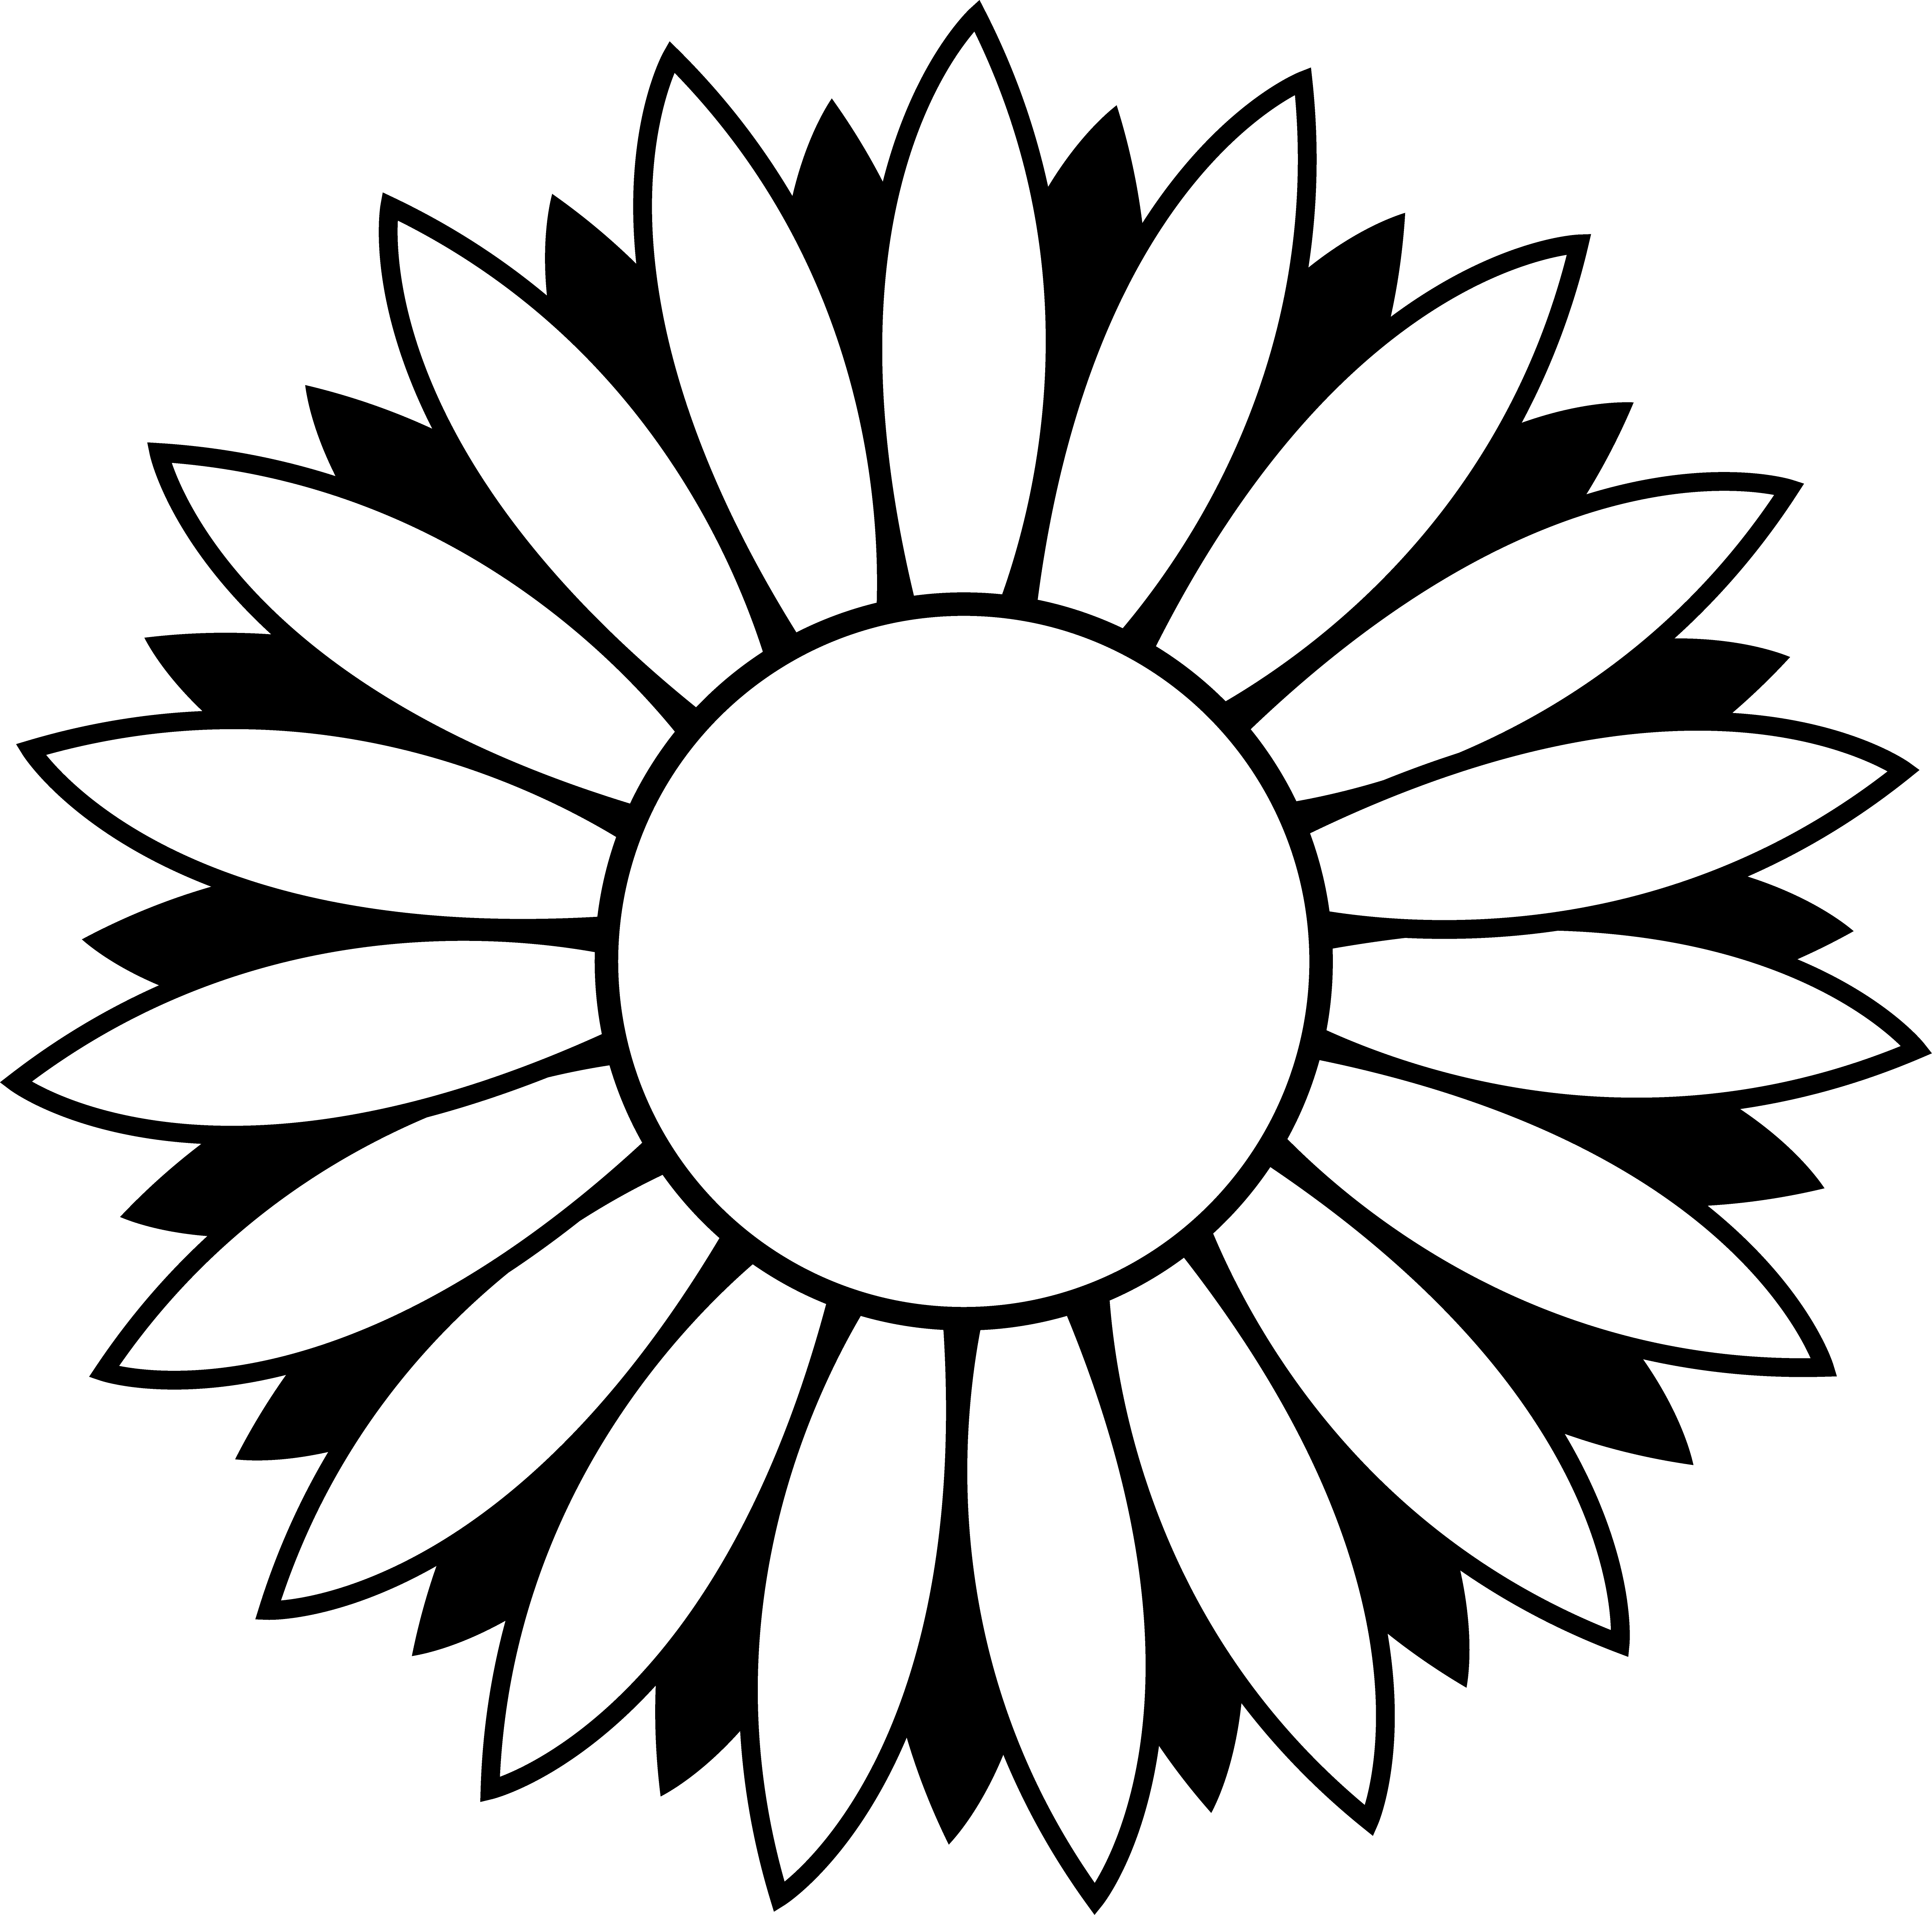 Free Black And White Free Clipart, Download Free Clip Art.